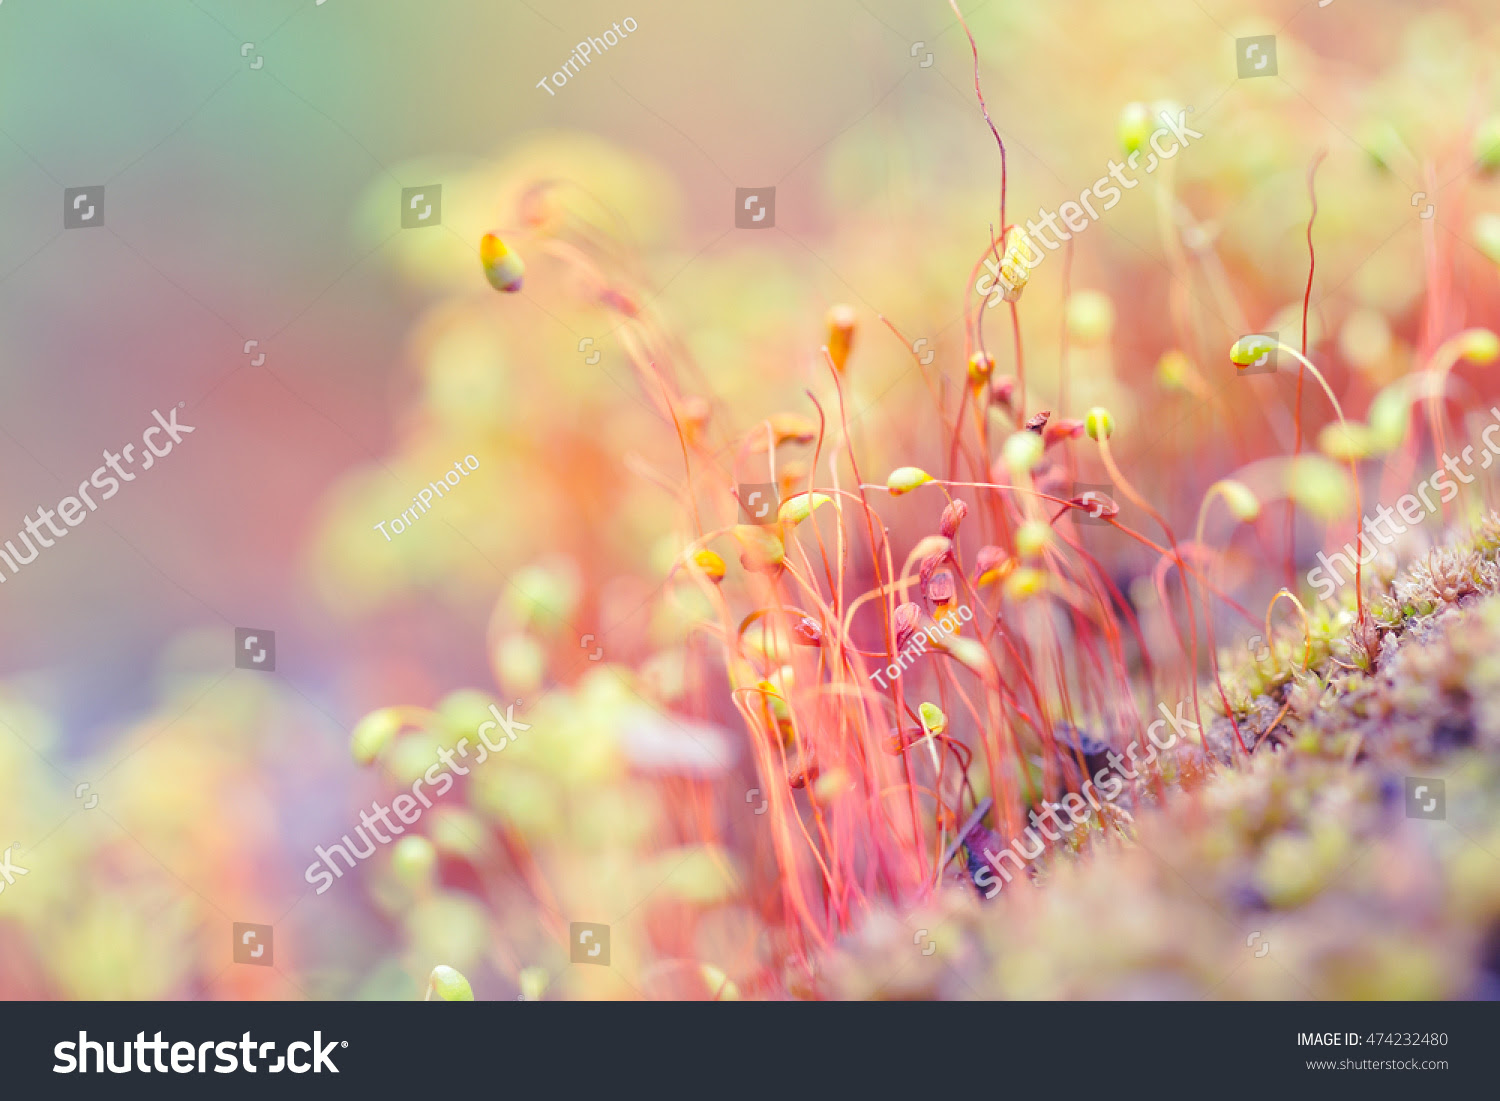 abstract, art, autumn, backdrop, background, beautiful, biology, blur, blurred, bokeh, botany, bright, capsule, close, closeup, color, colorful, defocused, design, detail, drop, fall, flora, flower, focus, forest, fresh, garden, grass, green, lichen, life, macro, moss, natural, nature, orange, outdoor, pink, plant, red, season, shallow, small, spore, spring, summer, wallpaper, wet, wild, yellow